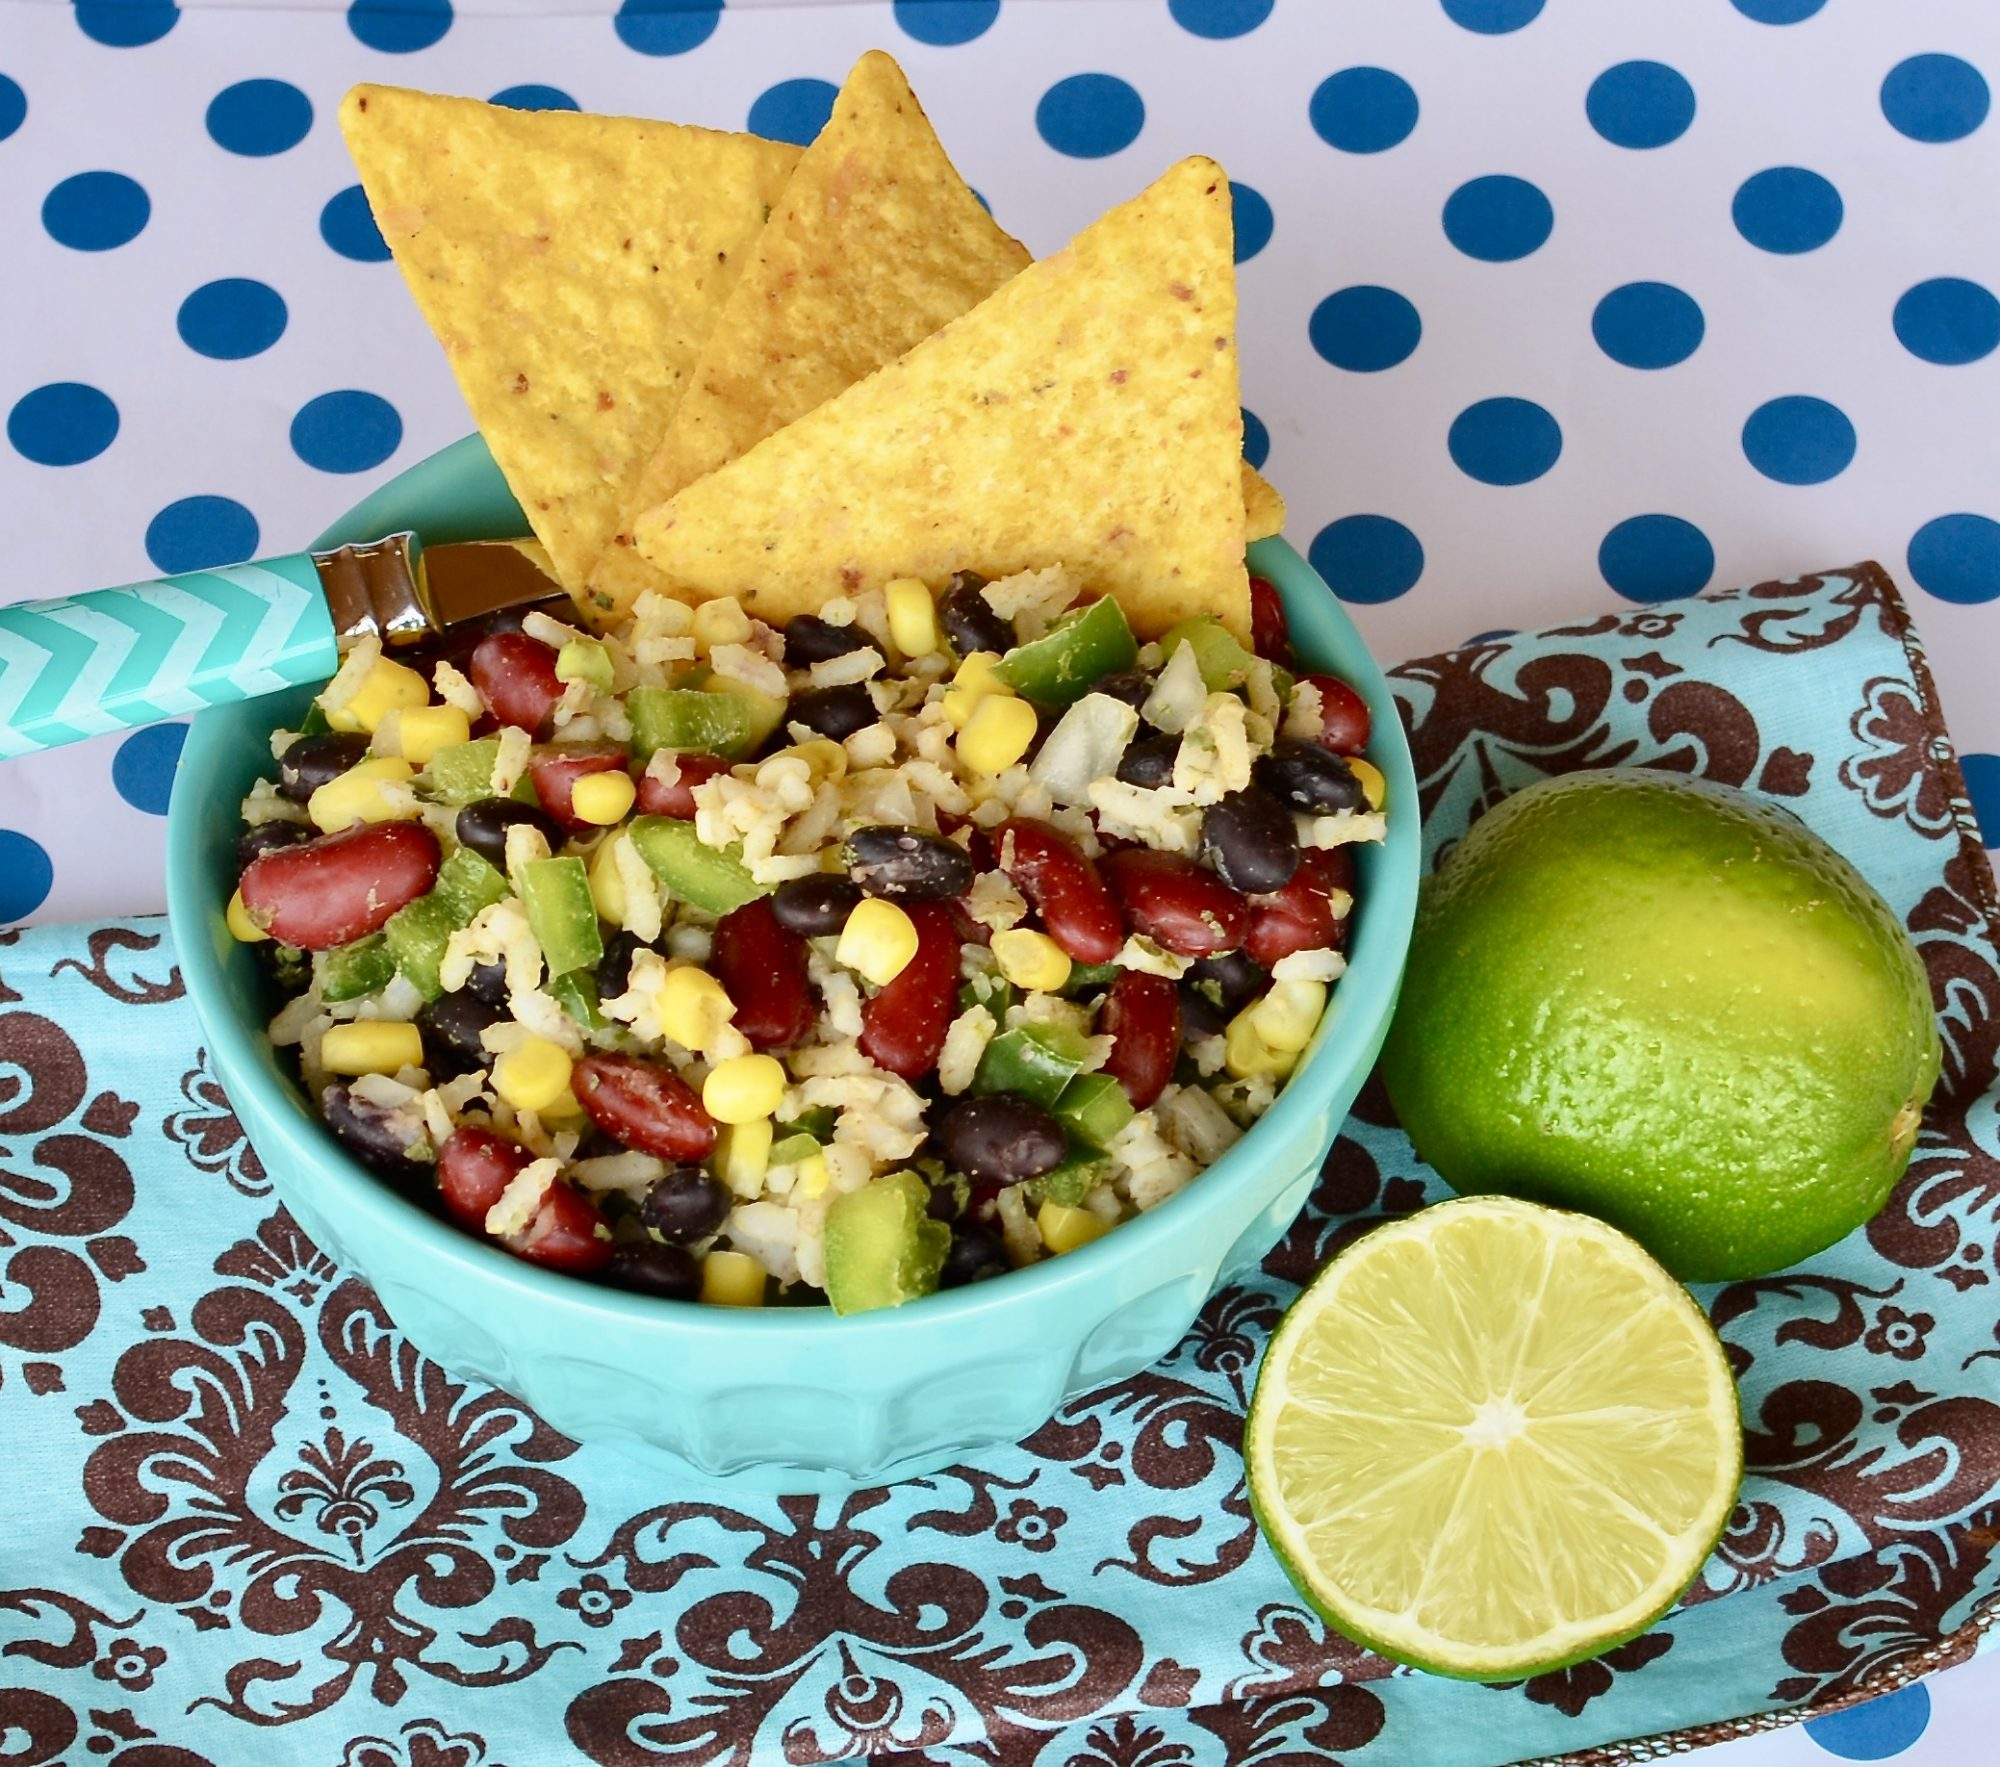 rice, bean, and corn salad in blue bowl with chips and limes